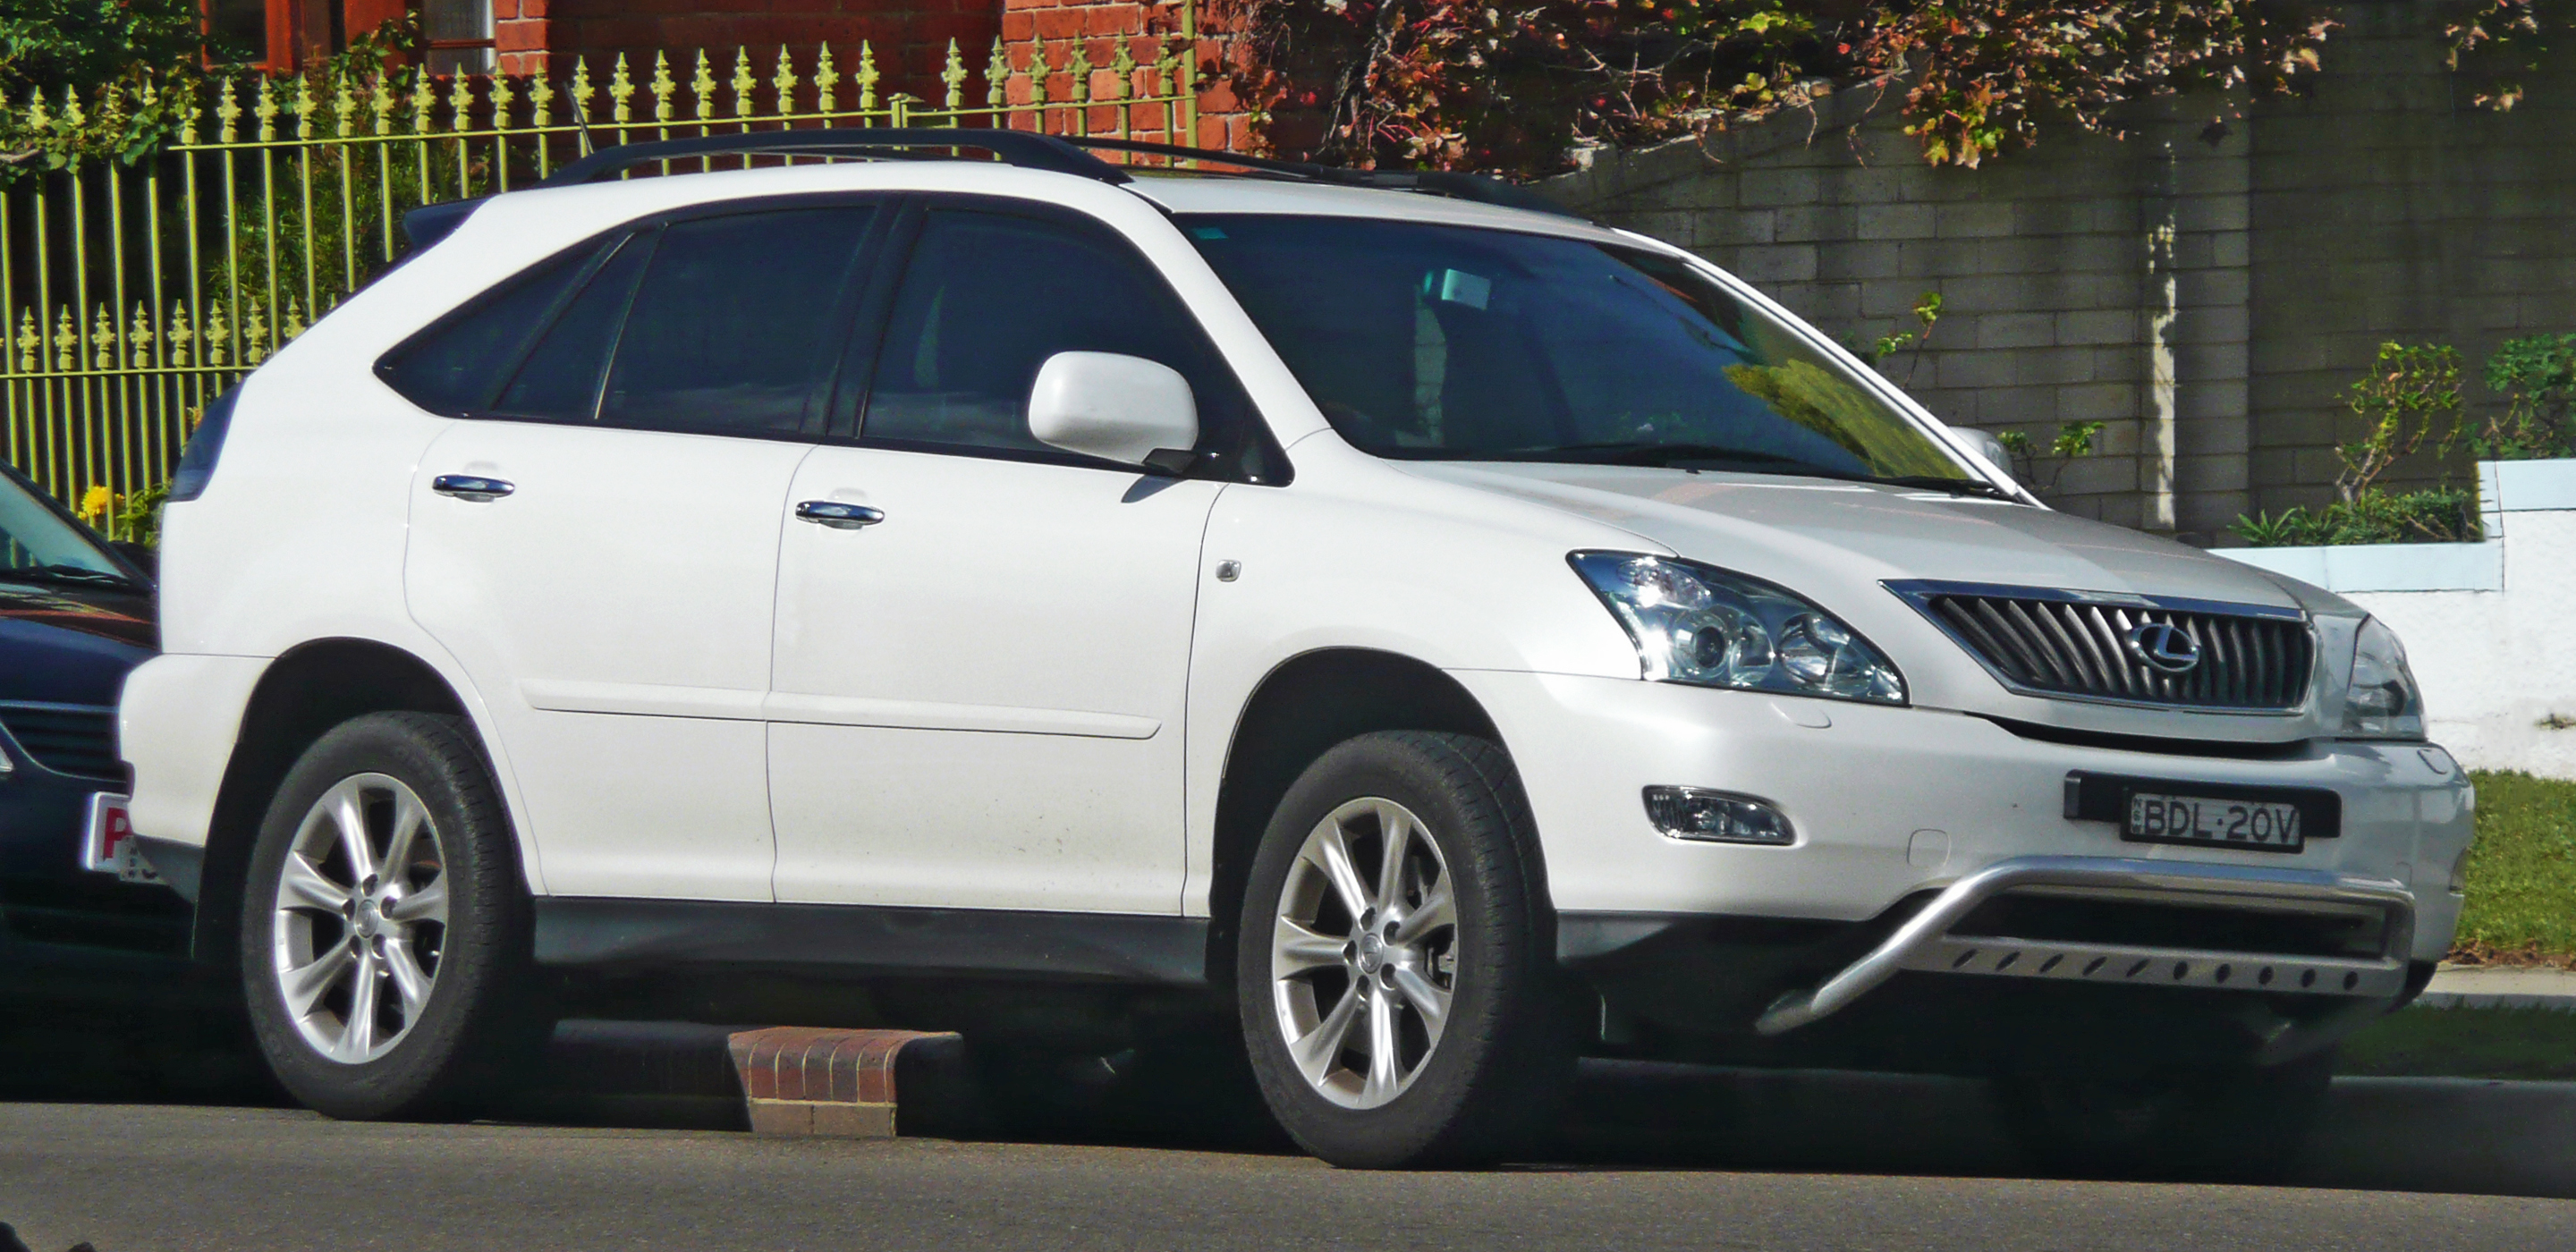 2007 Lexus Rx 350 Information And Photos Momentcar